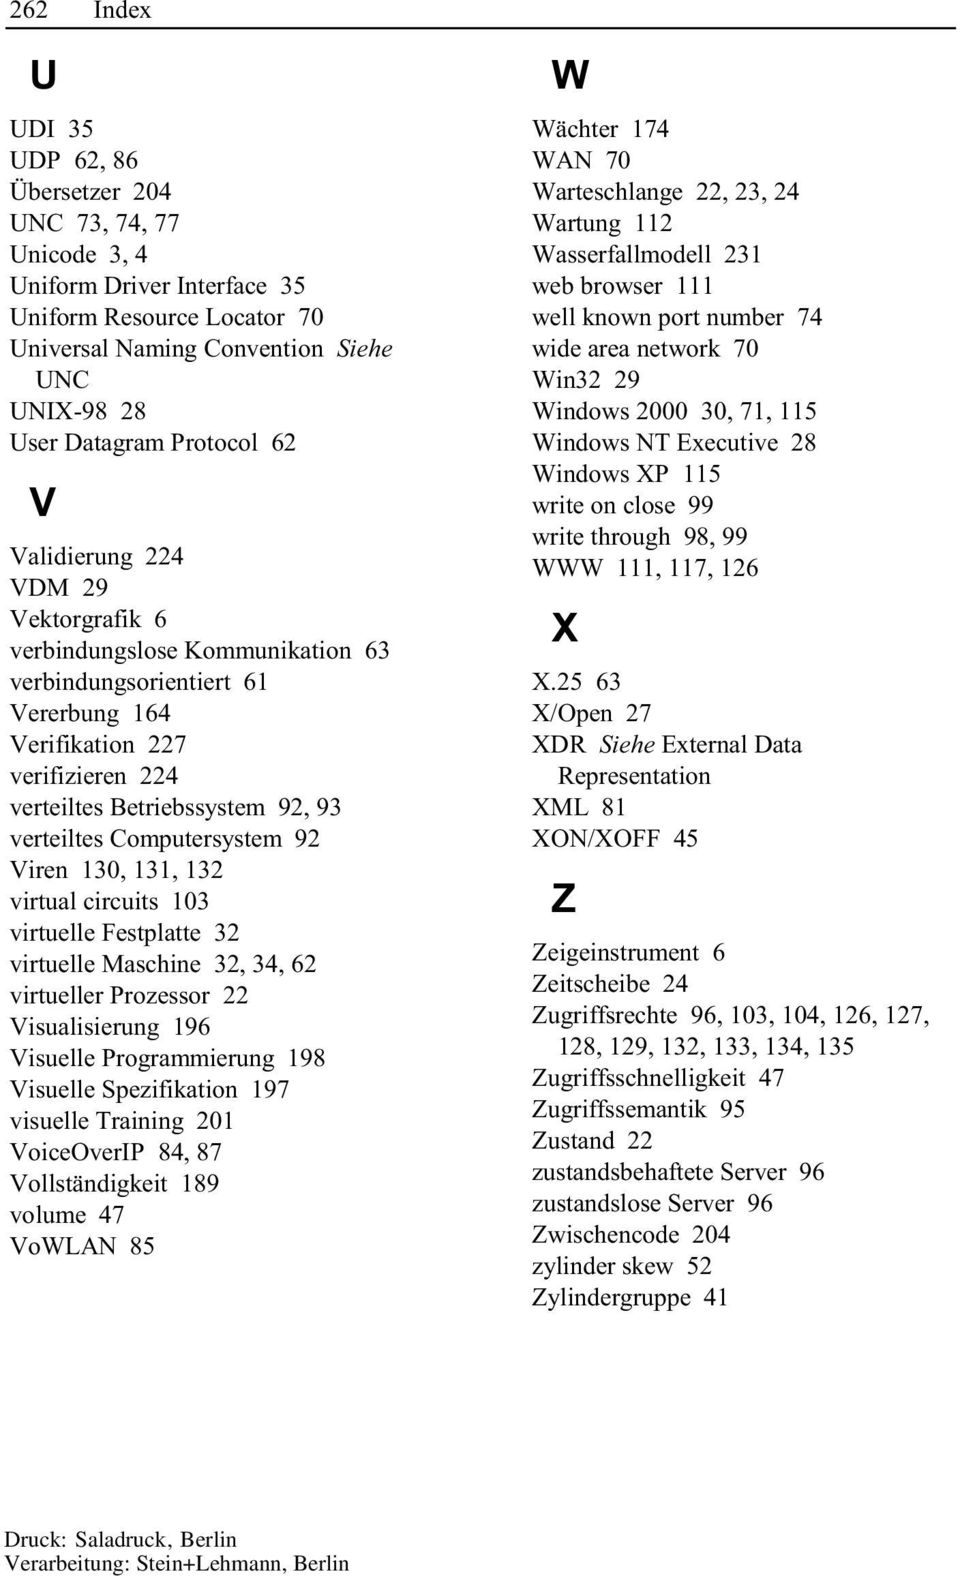 verteiltes Computersystem 92 Viren 130, 131, 132 virtual circuits 103 virtuelle Festplatte 32 virtuelle Maschine 32, 34, 62 virtueller Prozessor 22 Visualisierung 196 Visuelle Programmierung 198